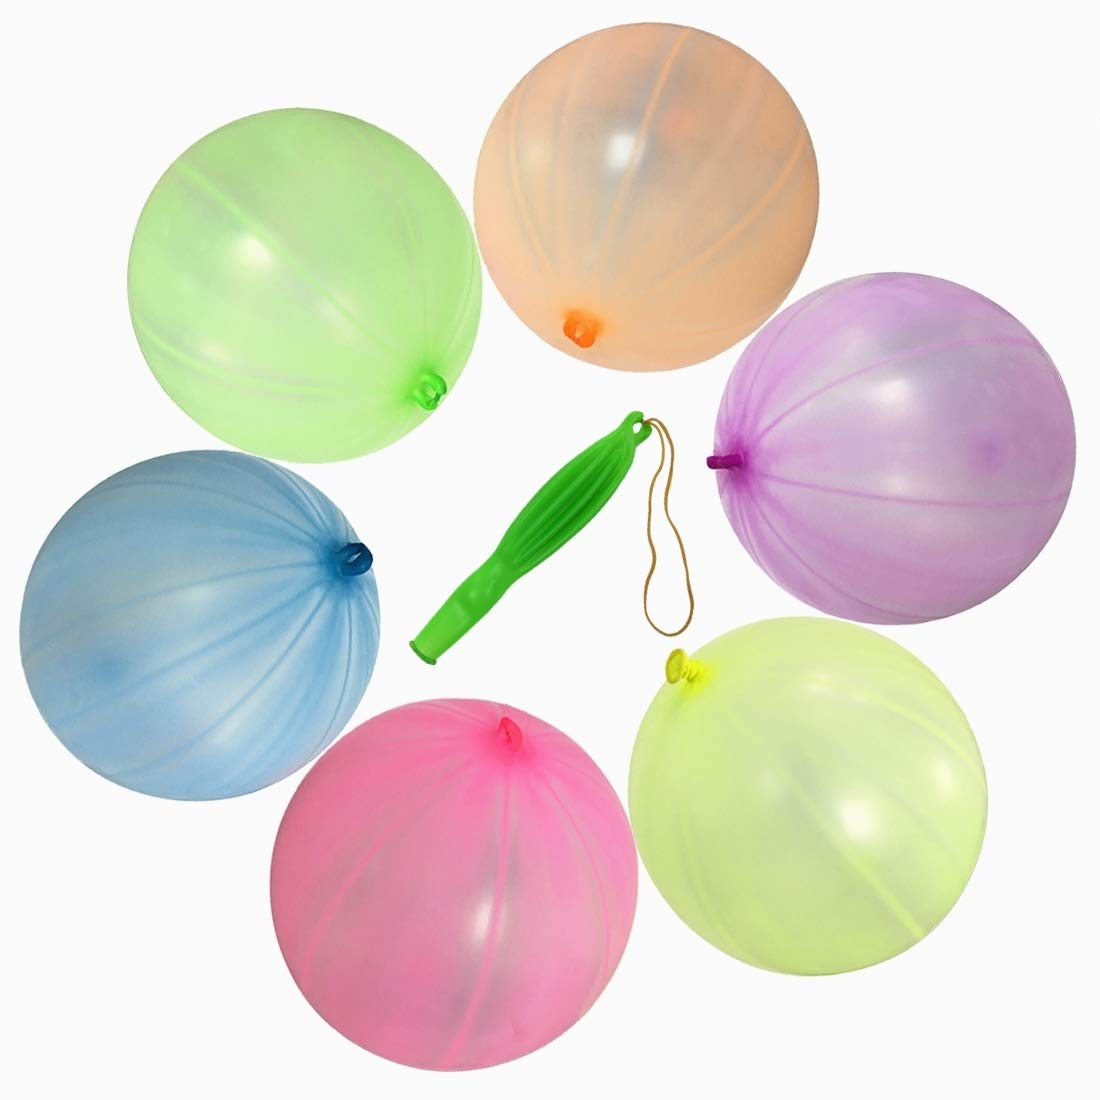 GuassLee 36PCS Punch Balls 12'' Round Punching Balloons Punch Balloon Party Decorations Kid's Girls Party Favors Assorted Neon Colors